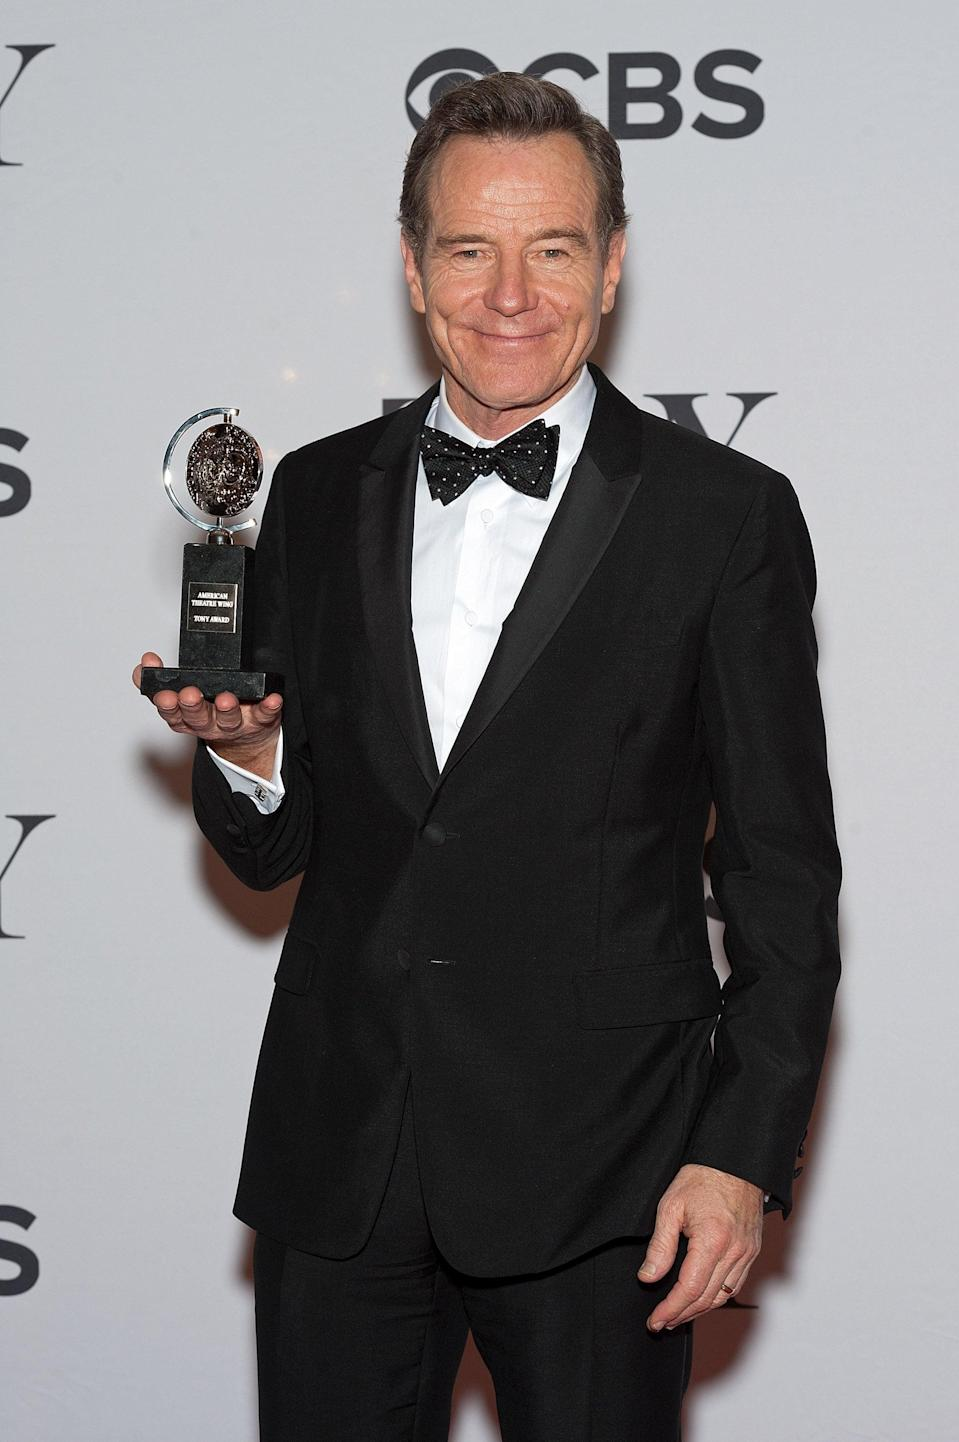 <ul> <li><strong>Has:</strong> Three Emmys for <strong>Breaking Bad</strong> and a Tony for <strong>All the Way</strong></li> <li><strong>Needs:</strong> A Grammy and an Oscar</li> </ul>